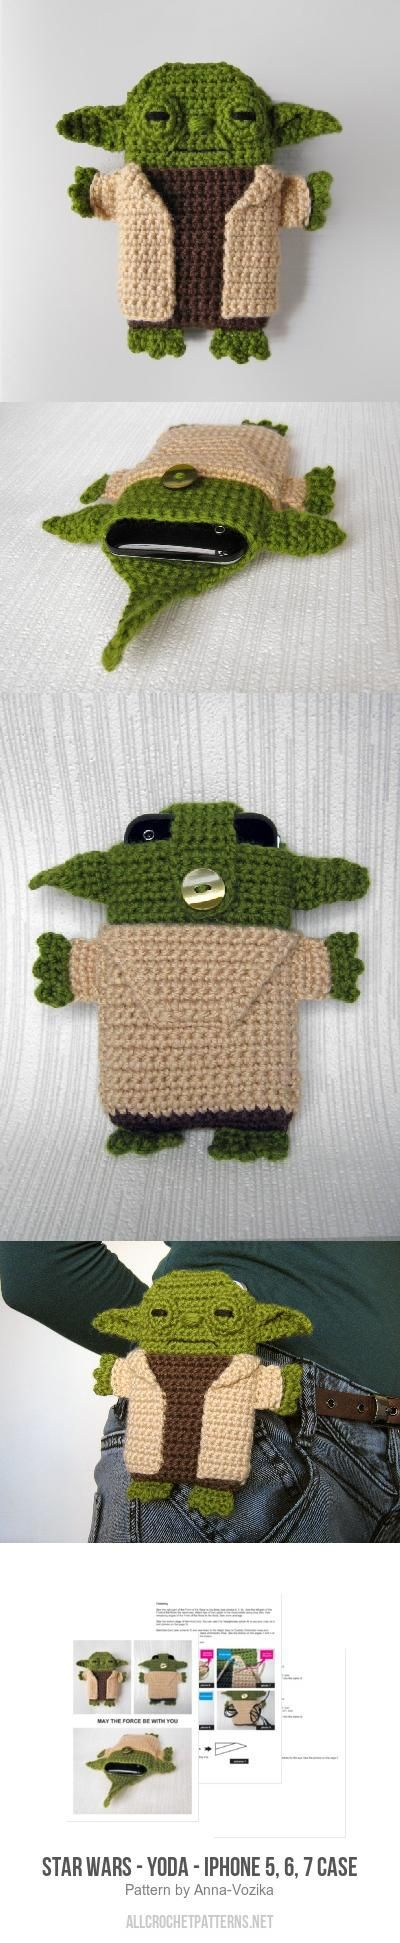 Star Wars - Yoda - iPhone 5, 6, 7 case crochet pattern